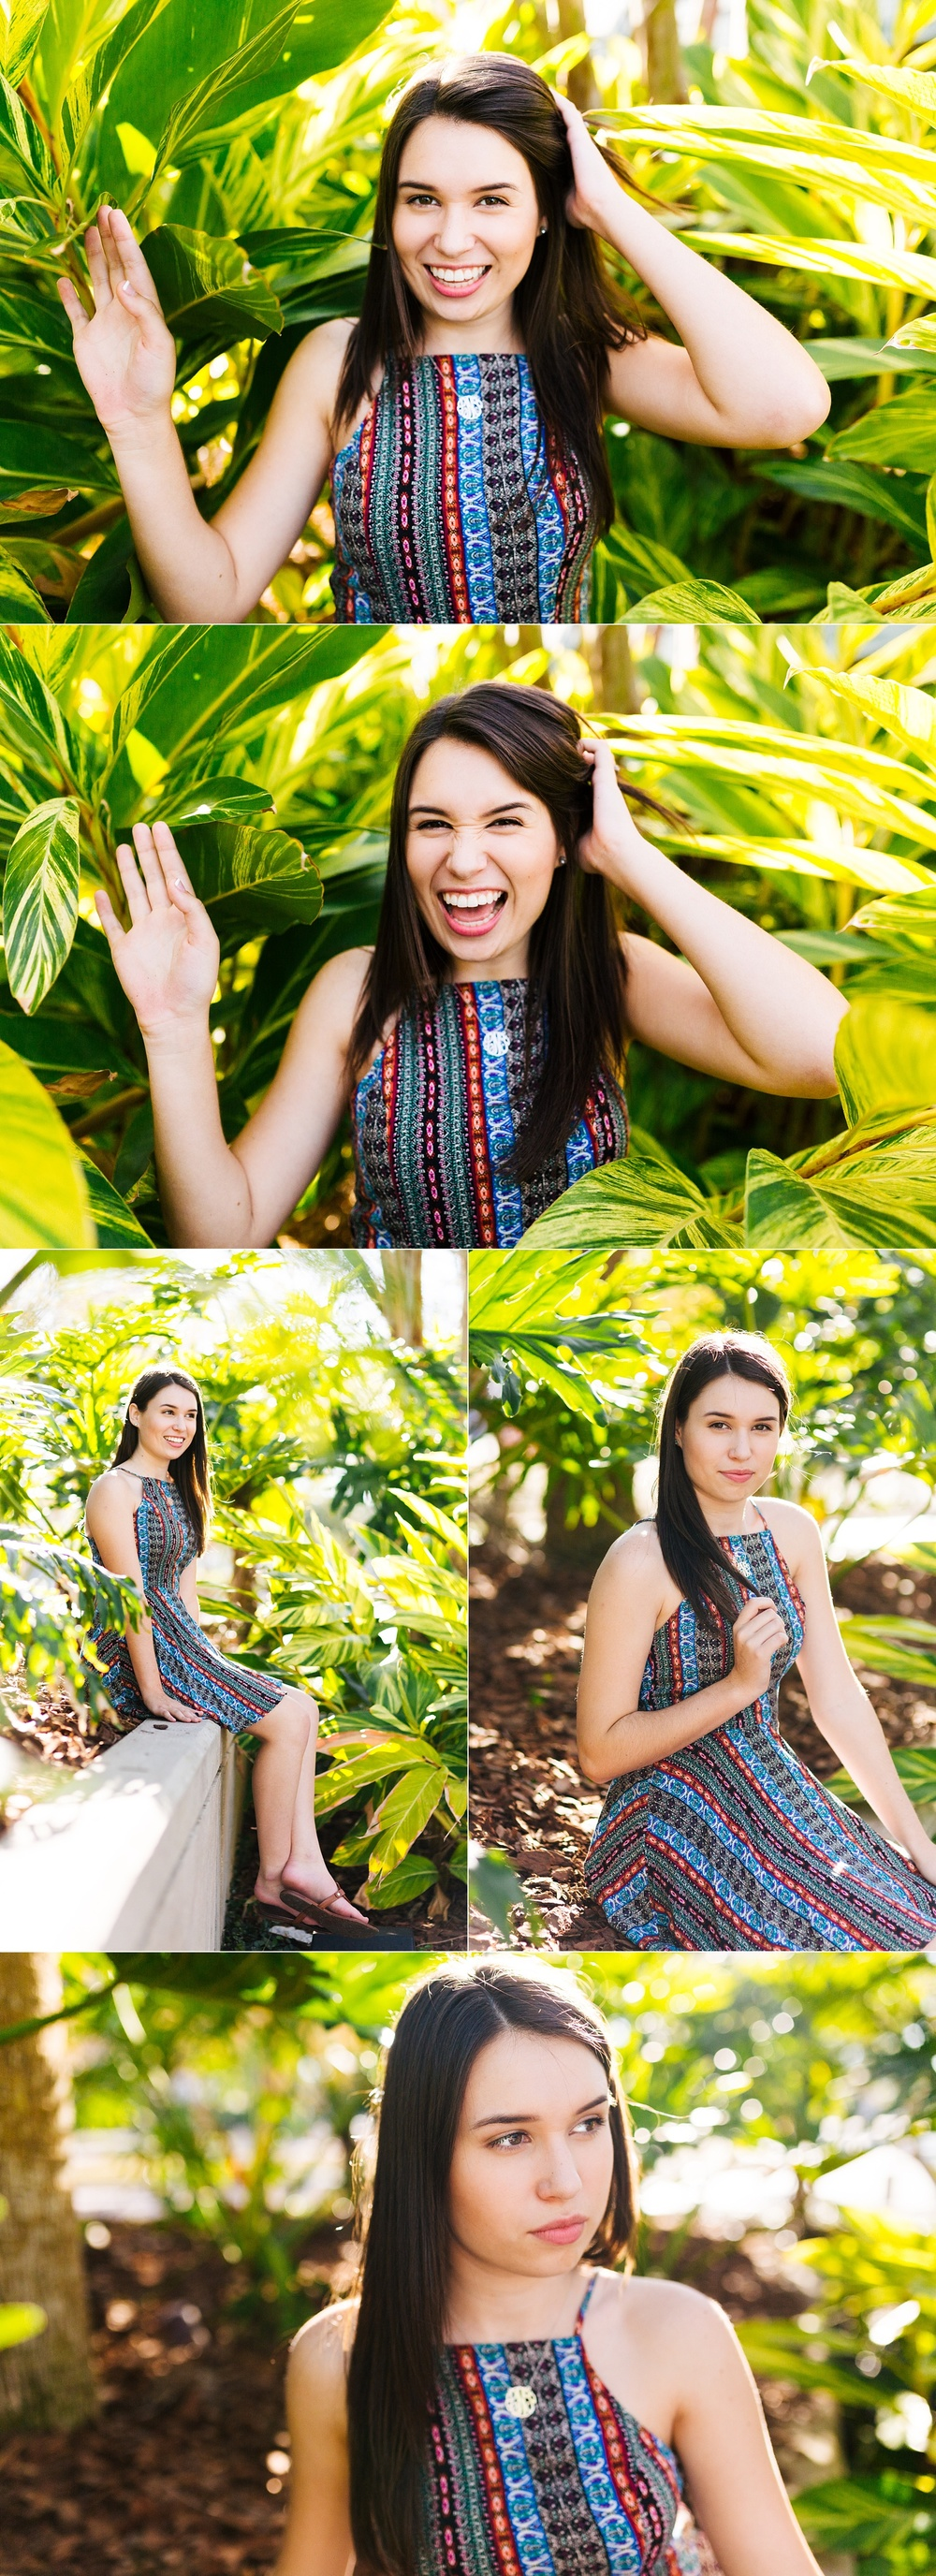 downtown tampa modern senior portraits lindsay-6